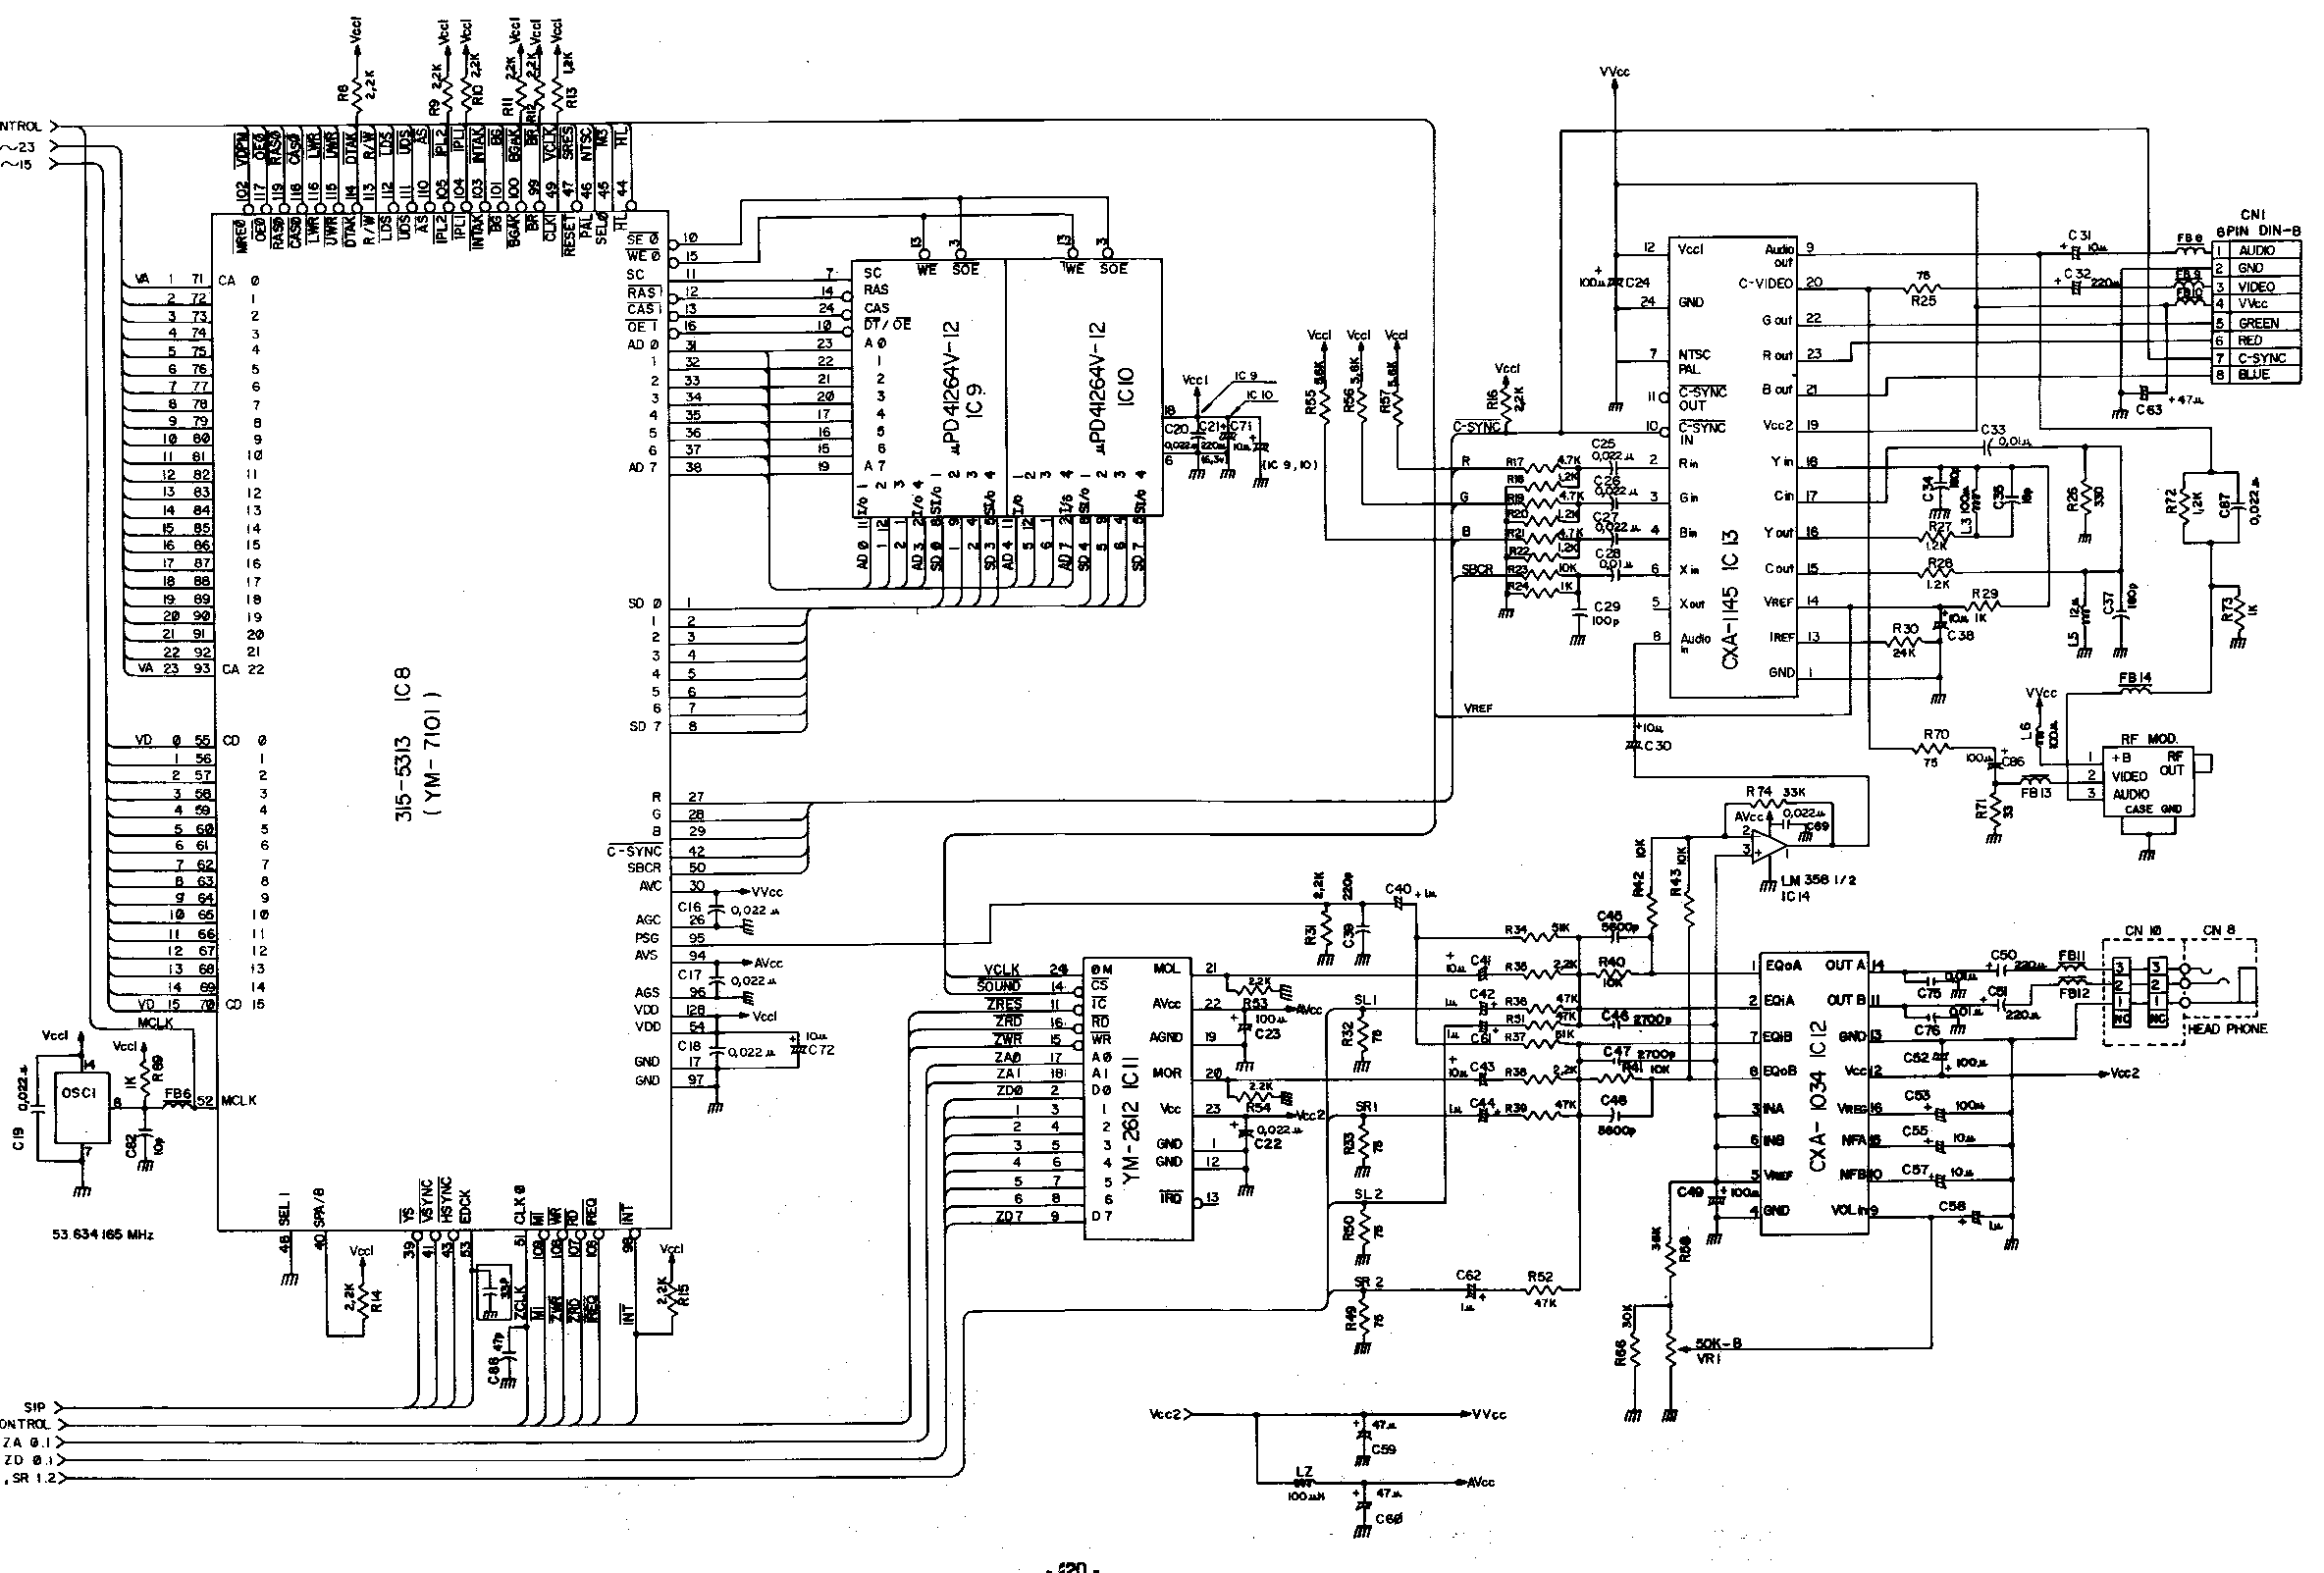 Schematicsconsole Related Schematics Nfg Games Gamesx Two Schematic Wiring Diagram Genesis Sound And Video Block